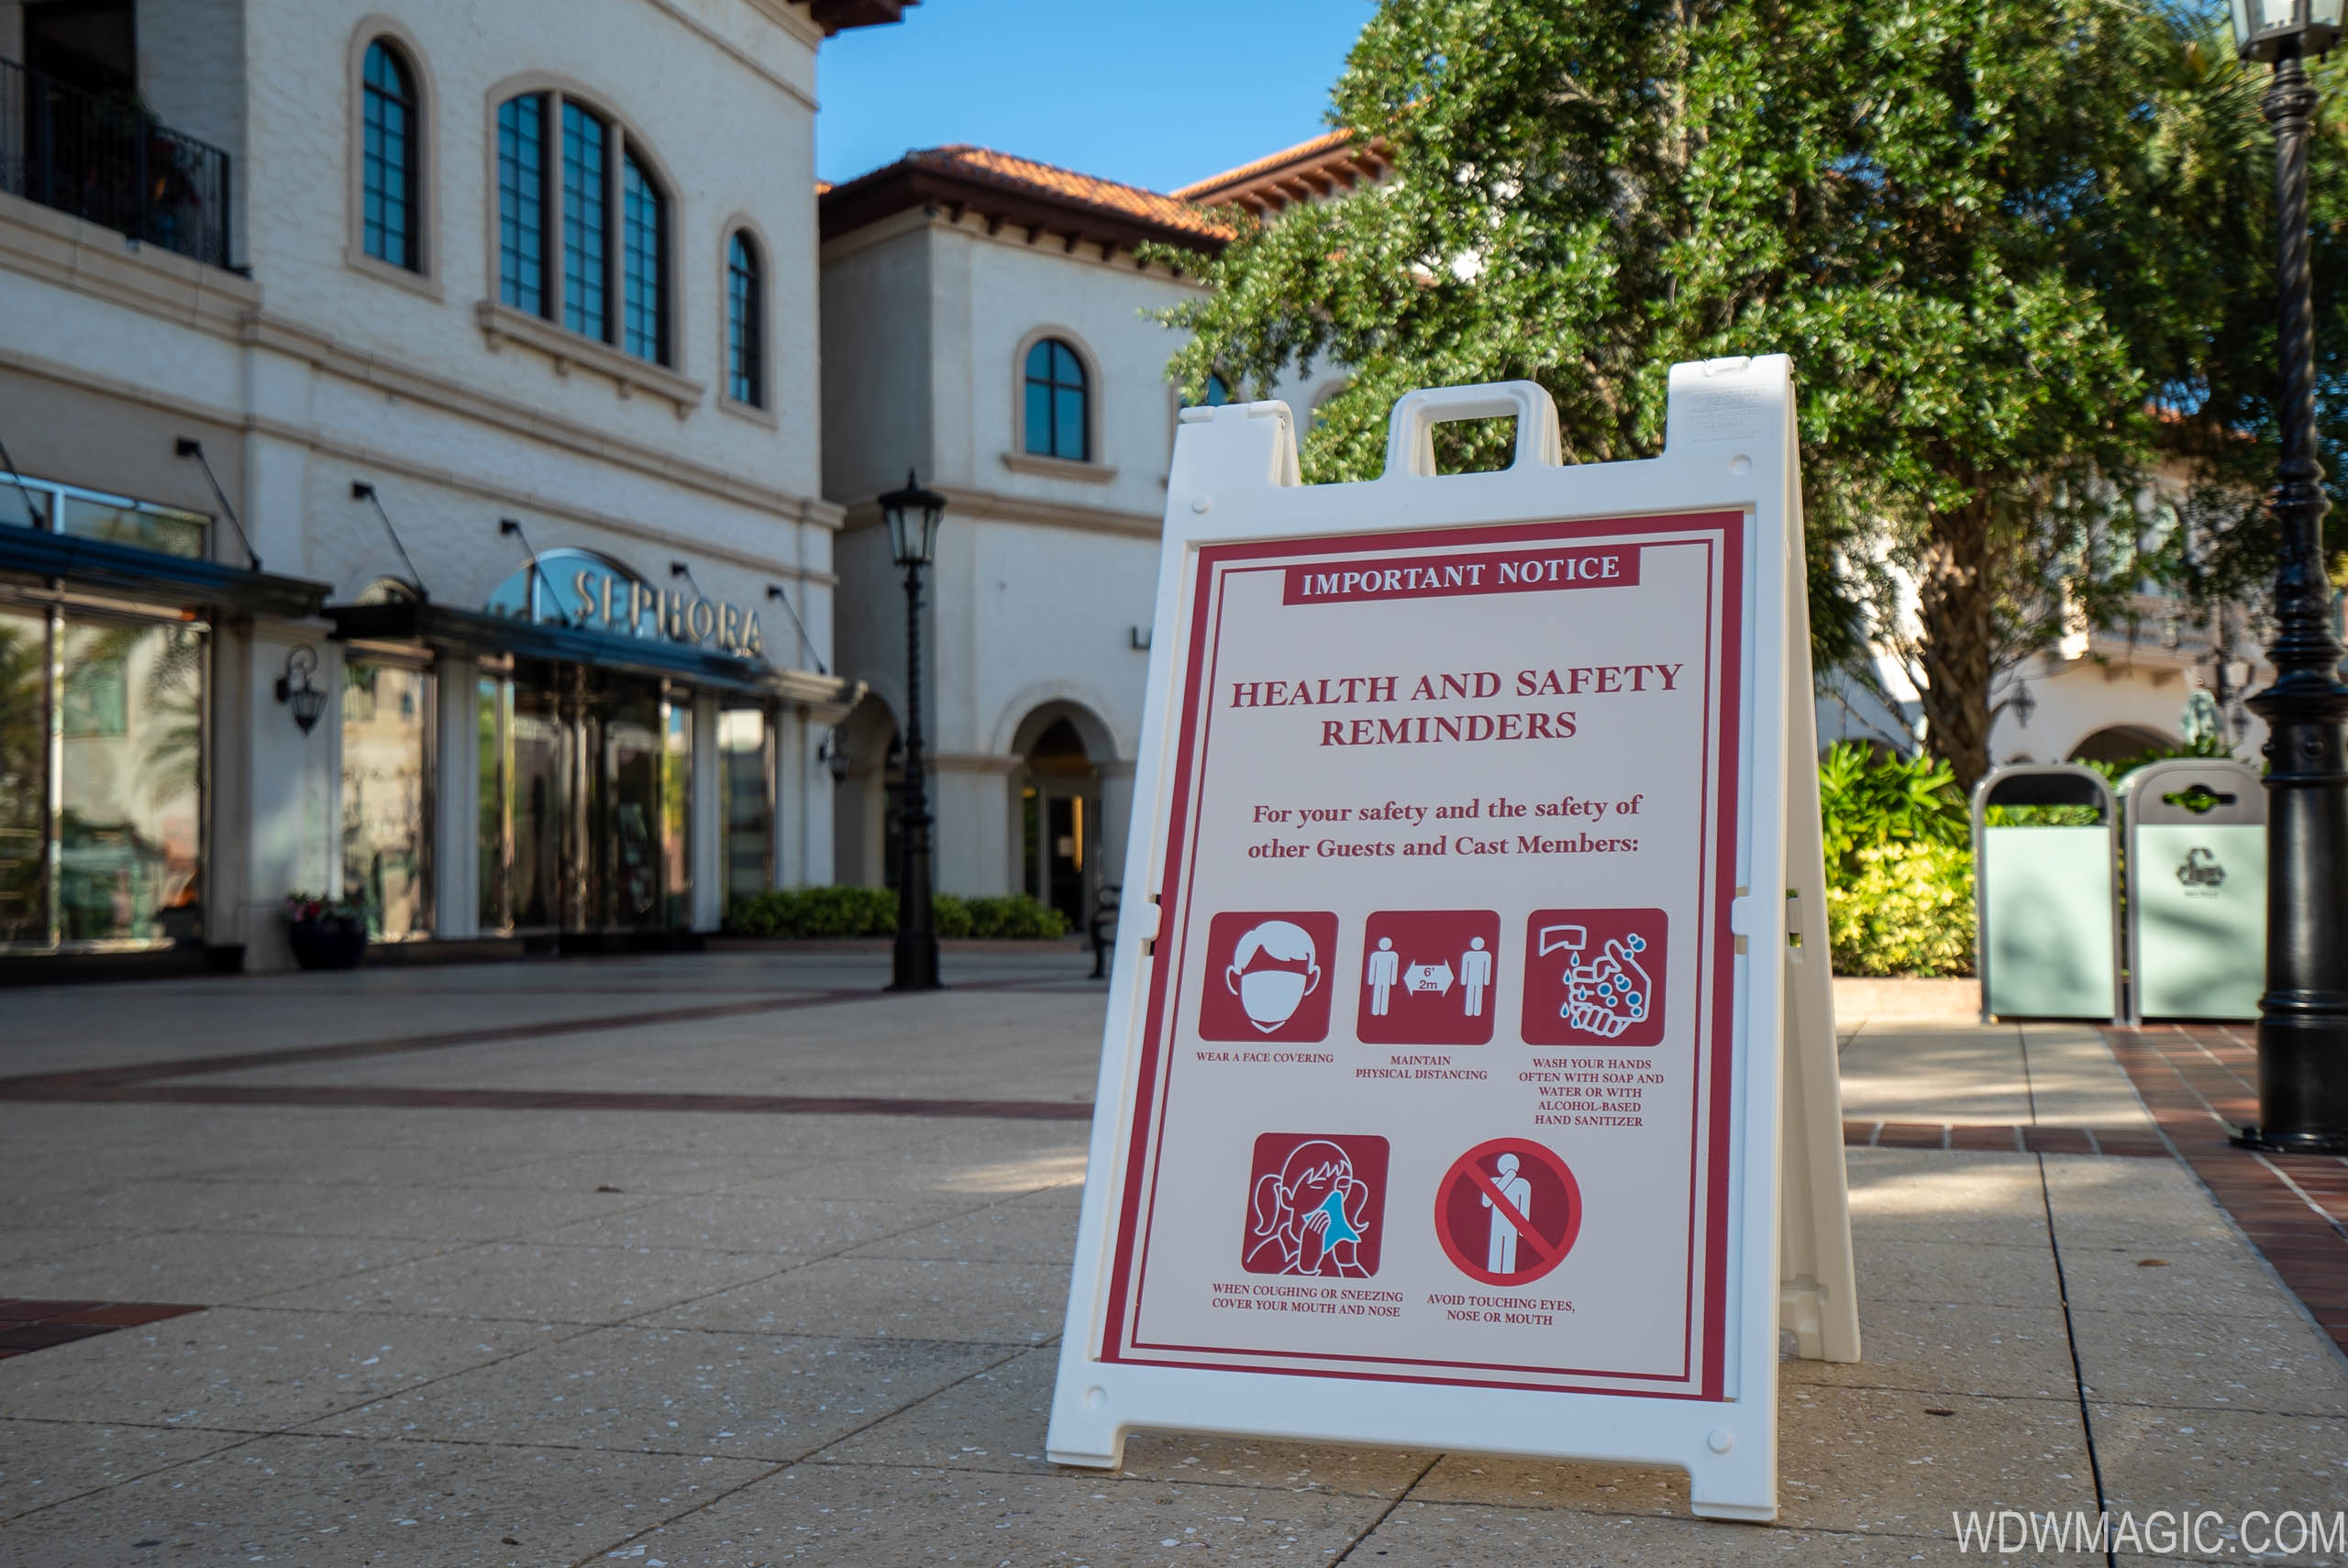 First day of Disney Springs reopening from COVID-19 shutdown